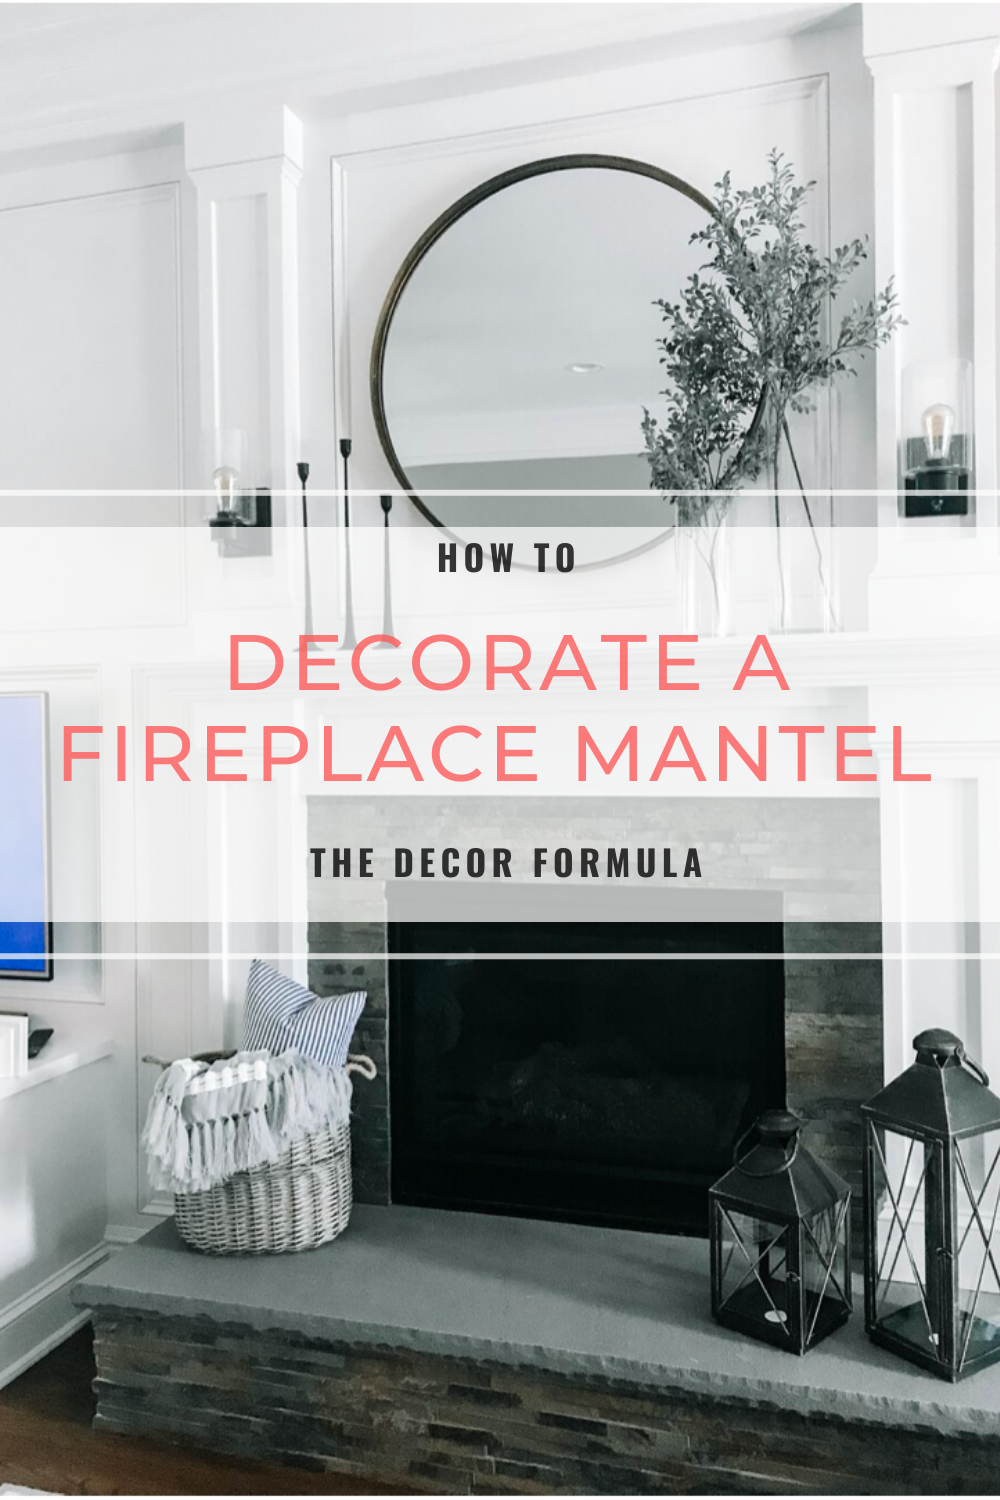 How To Decorate A Fireplace Mantel, How To Decorate Mantels On Fireplaces